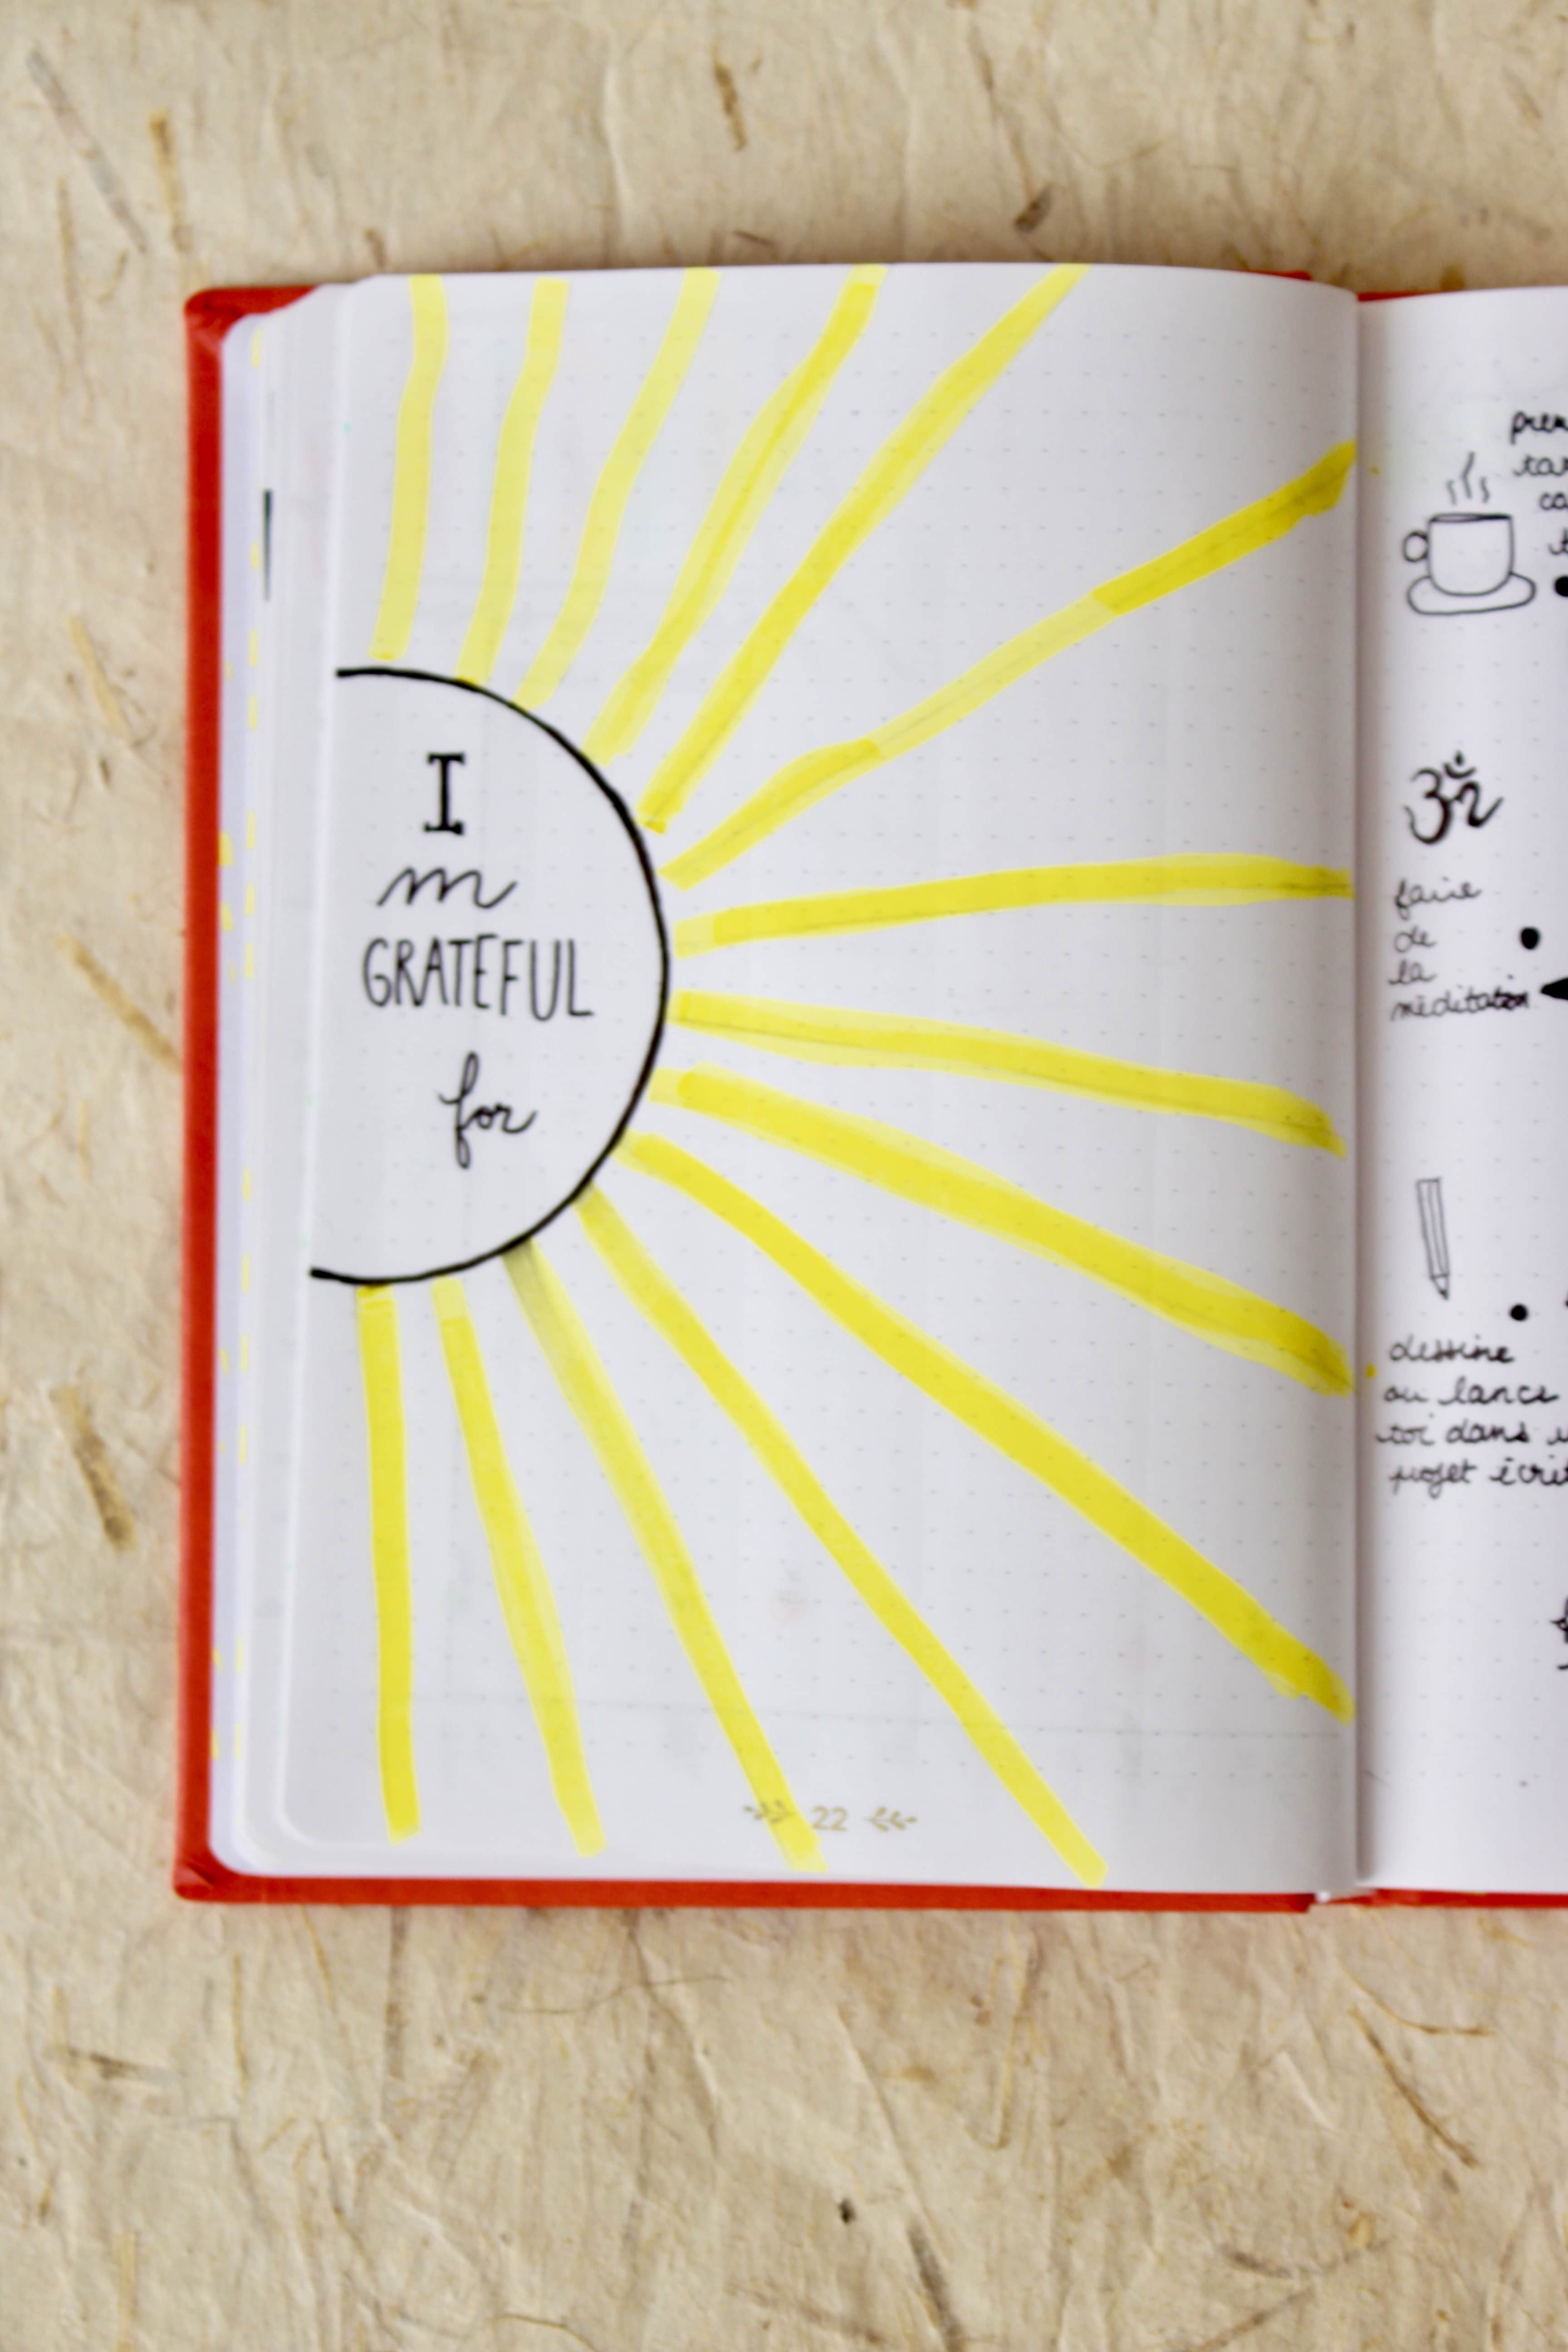 bullet-journal-exemple-gratitude